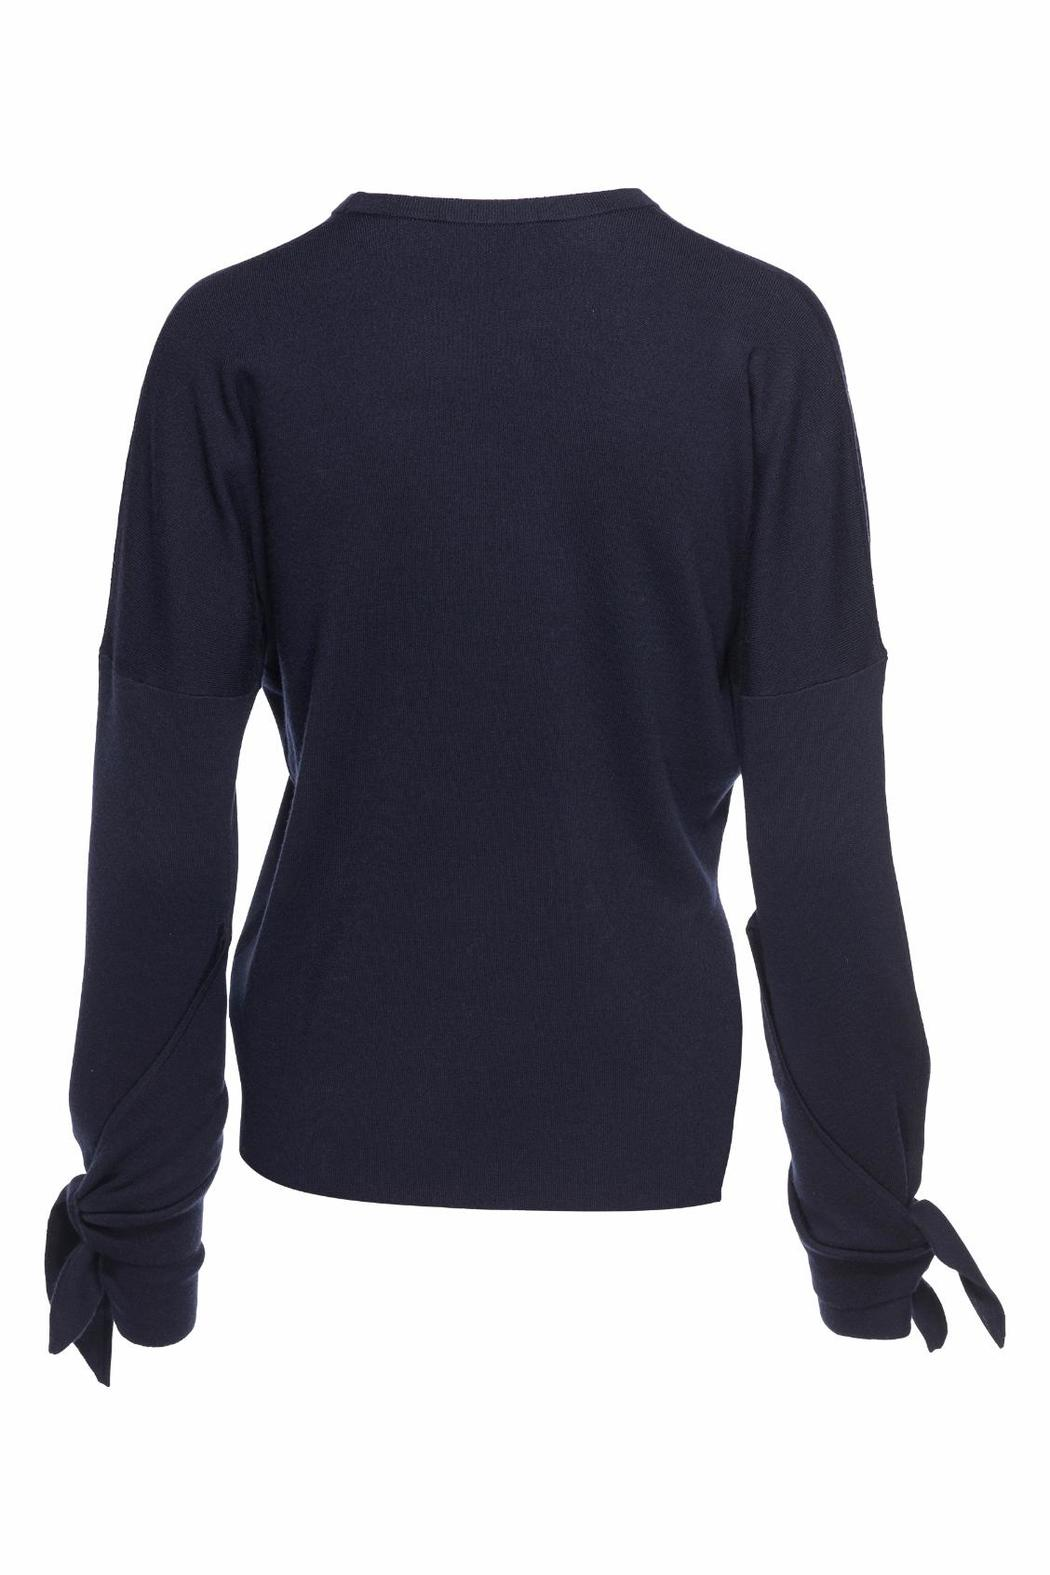 Tibi Tie Sleeve Sweater - Front Full Image